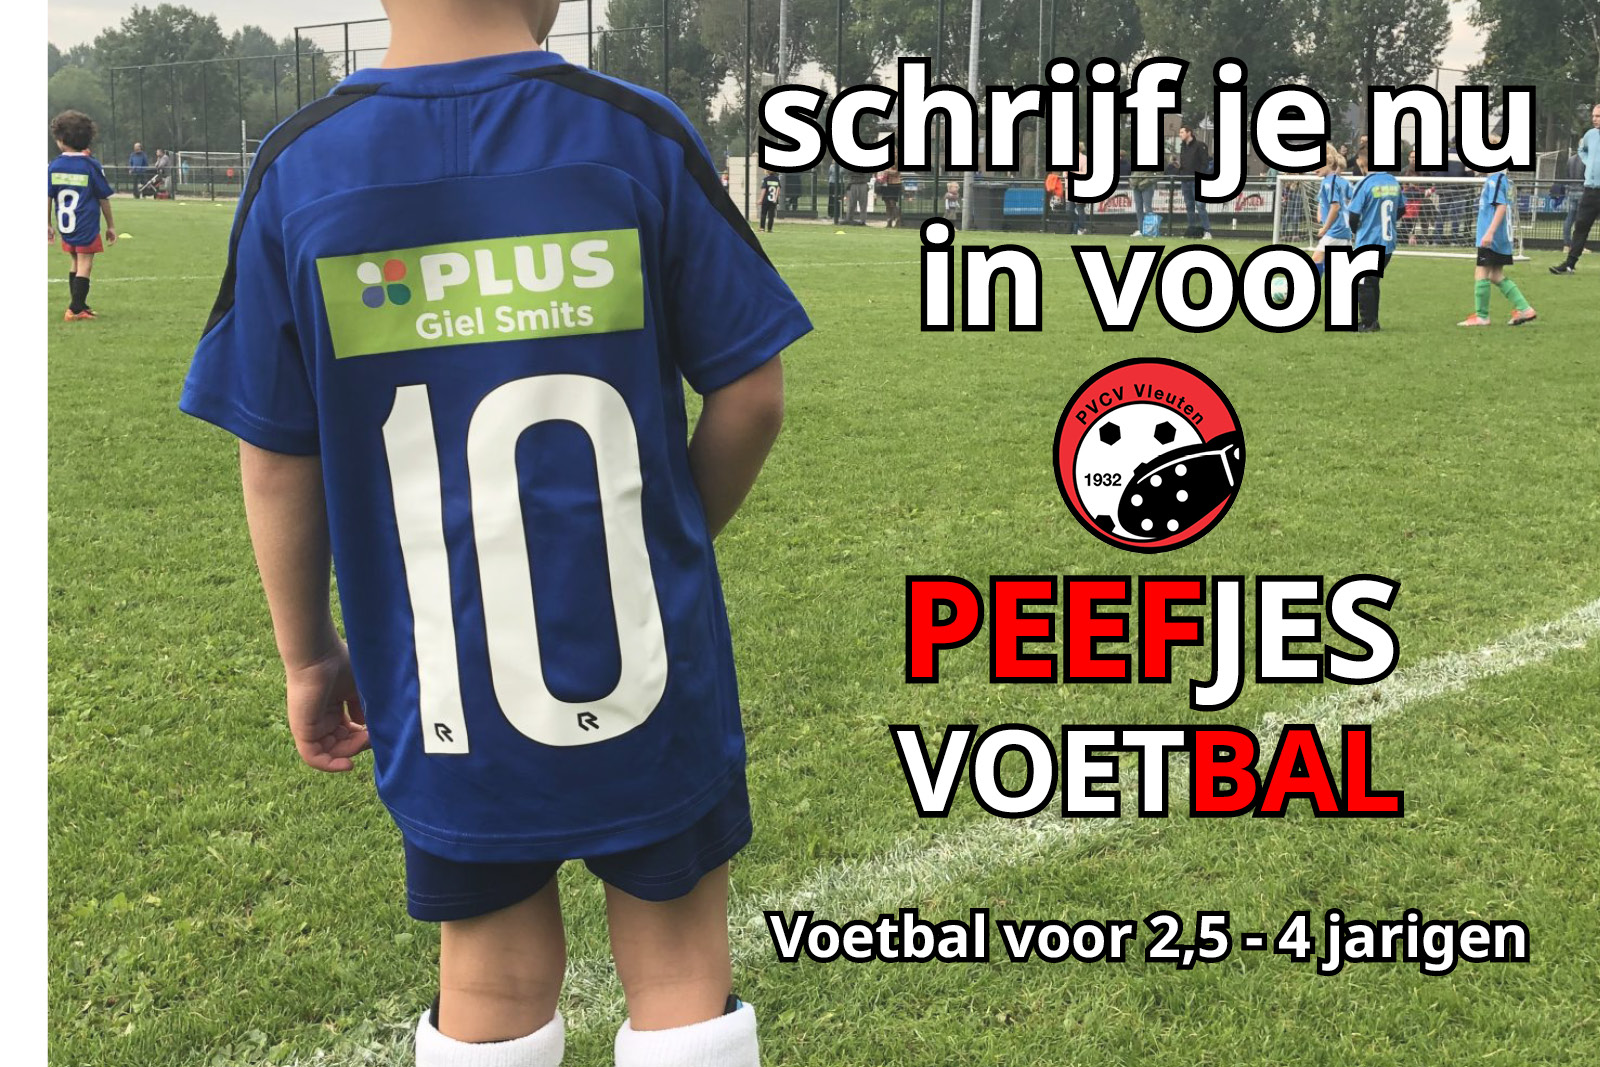 Inschrijving Peefjes voetbal nu geopend!